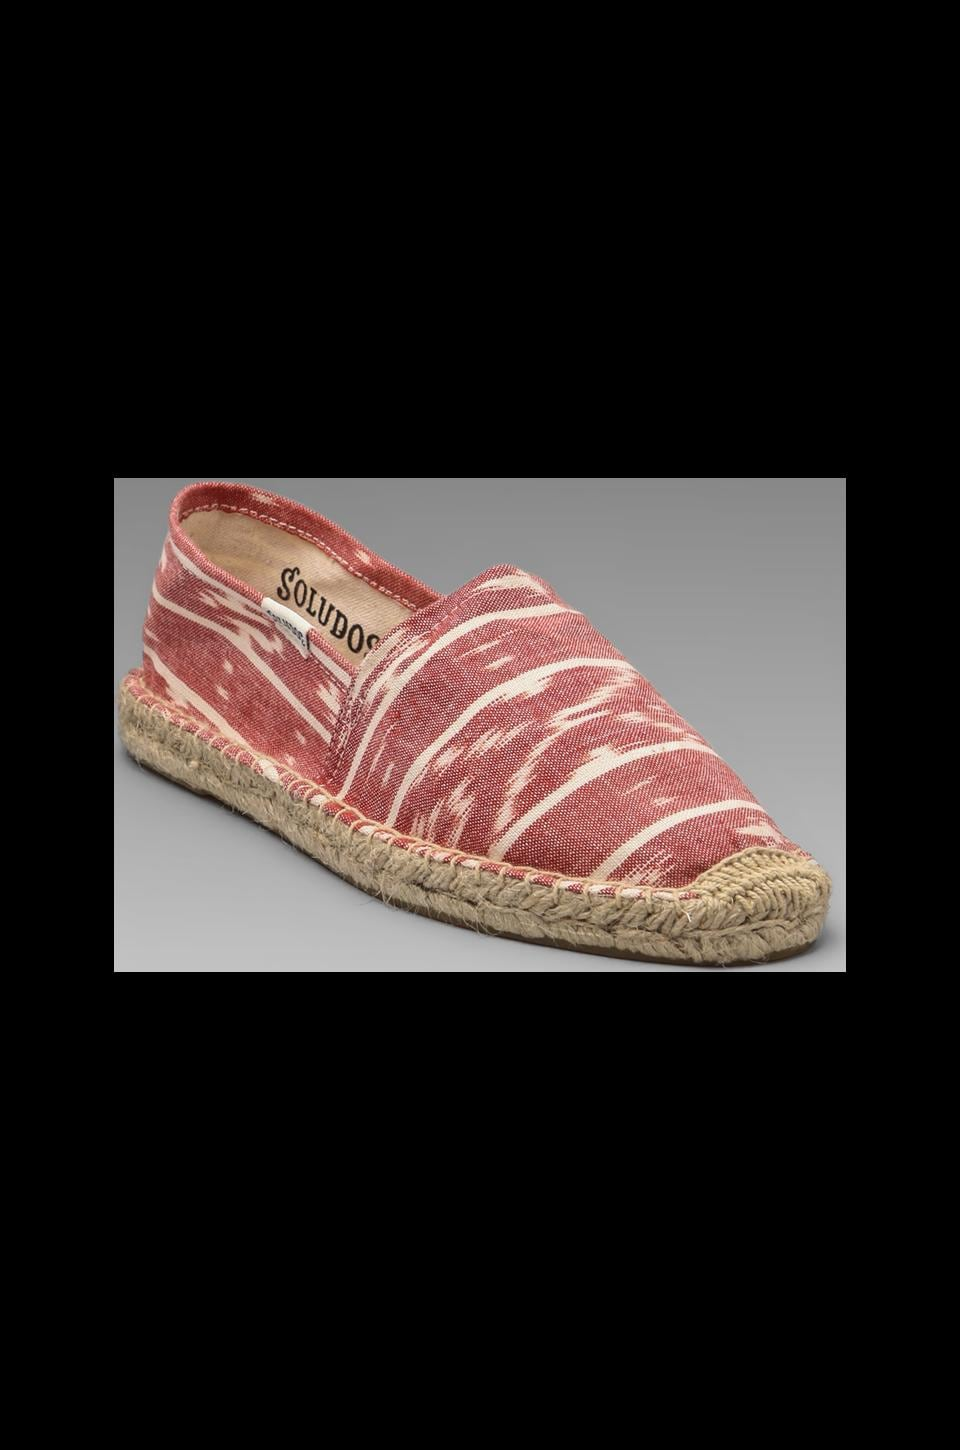 Soludos Ikat in Coral White